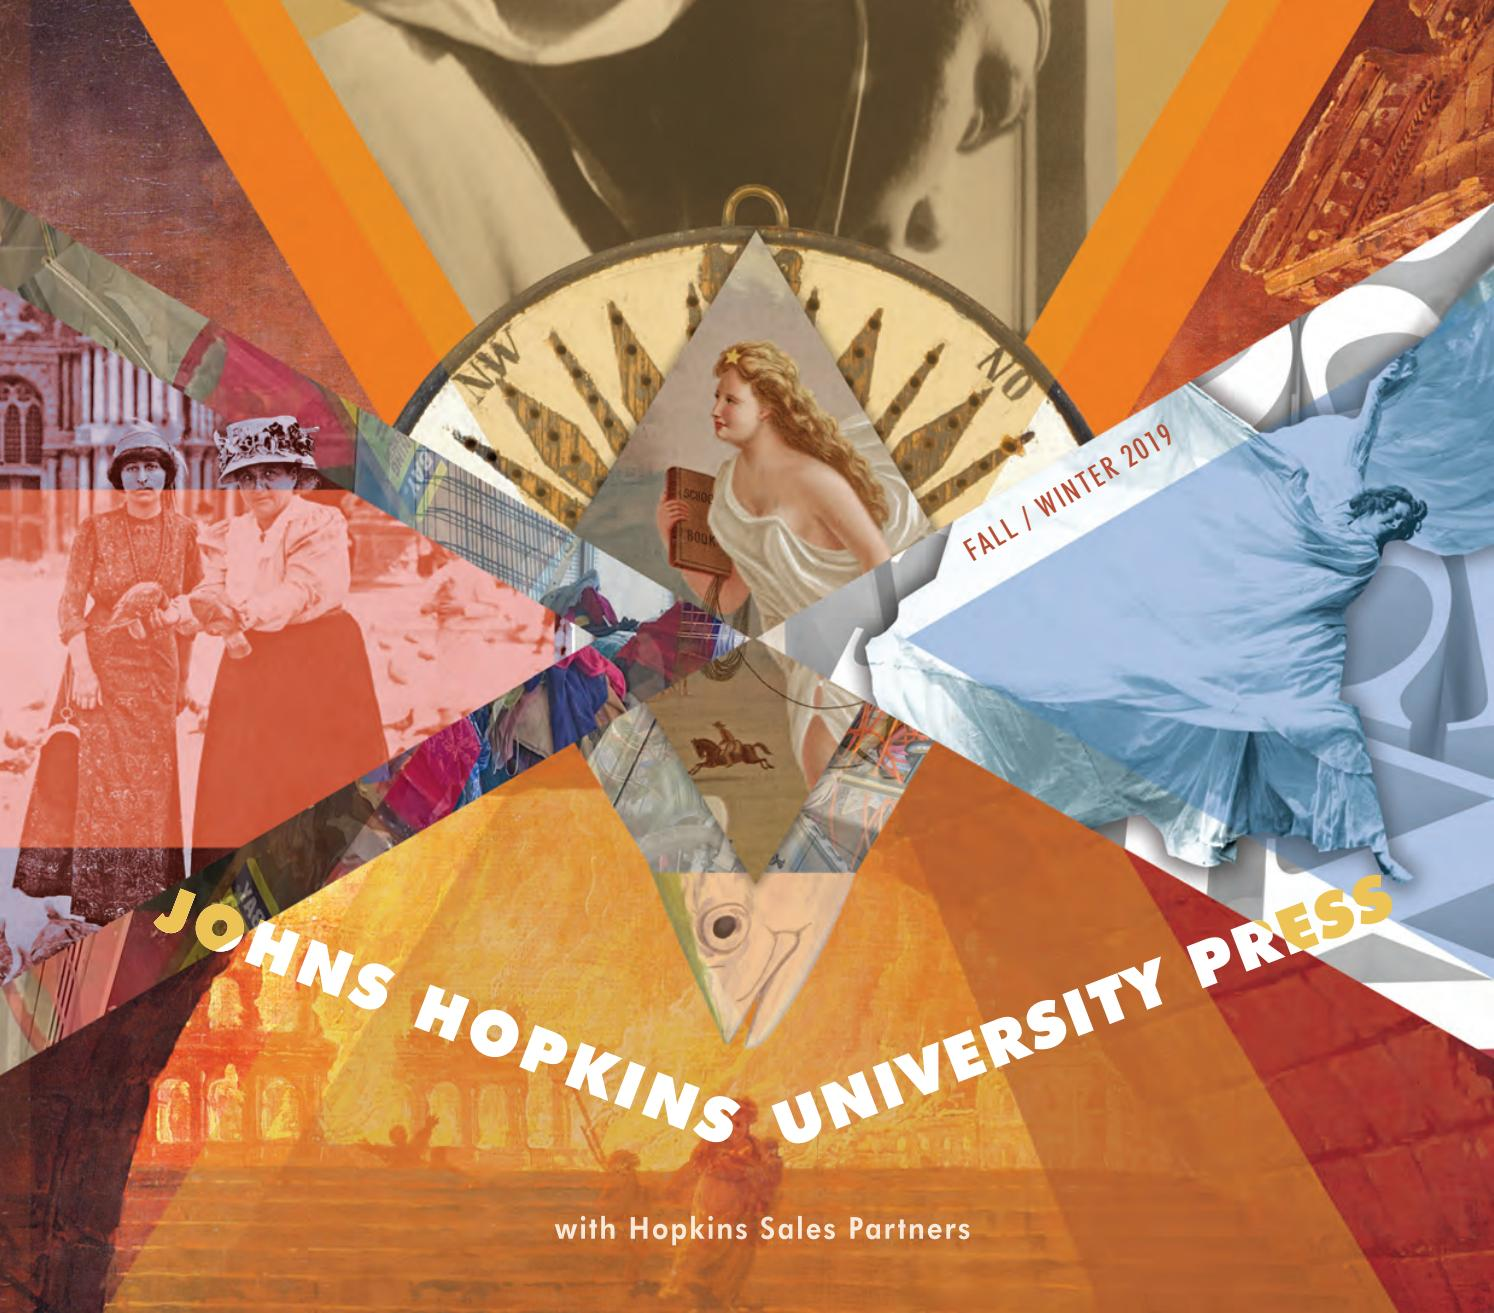 Johns Hopkins University Press New Books for Fall 2019 by Susan